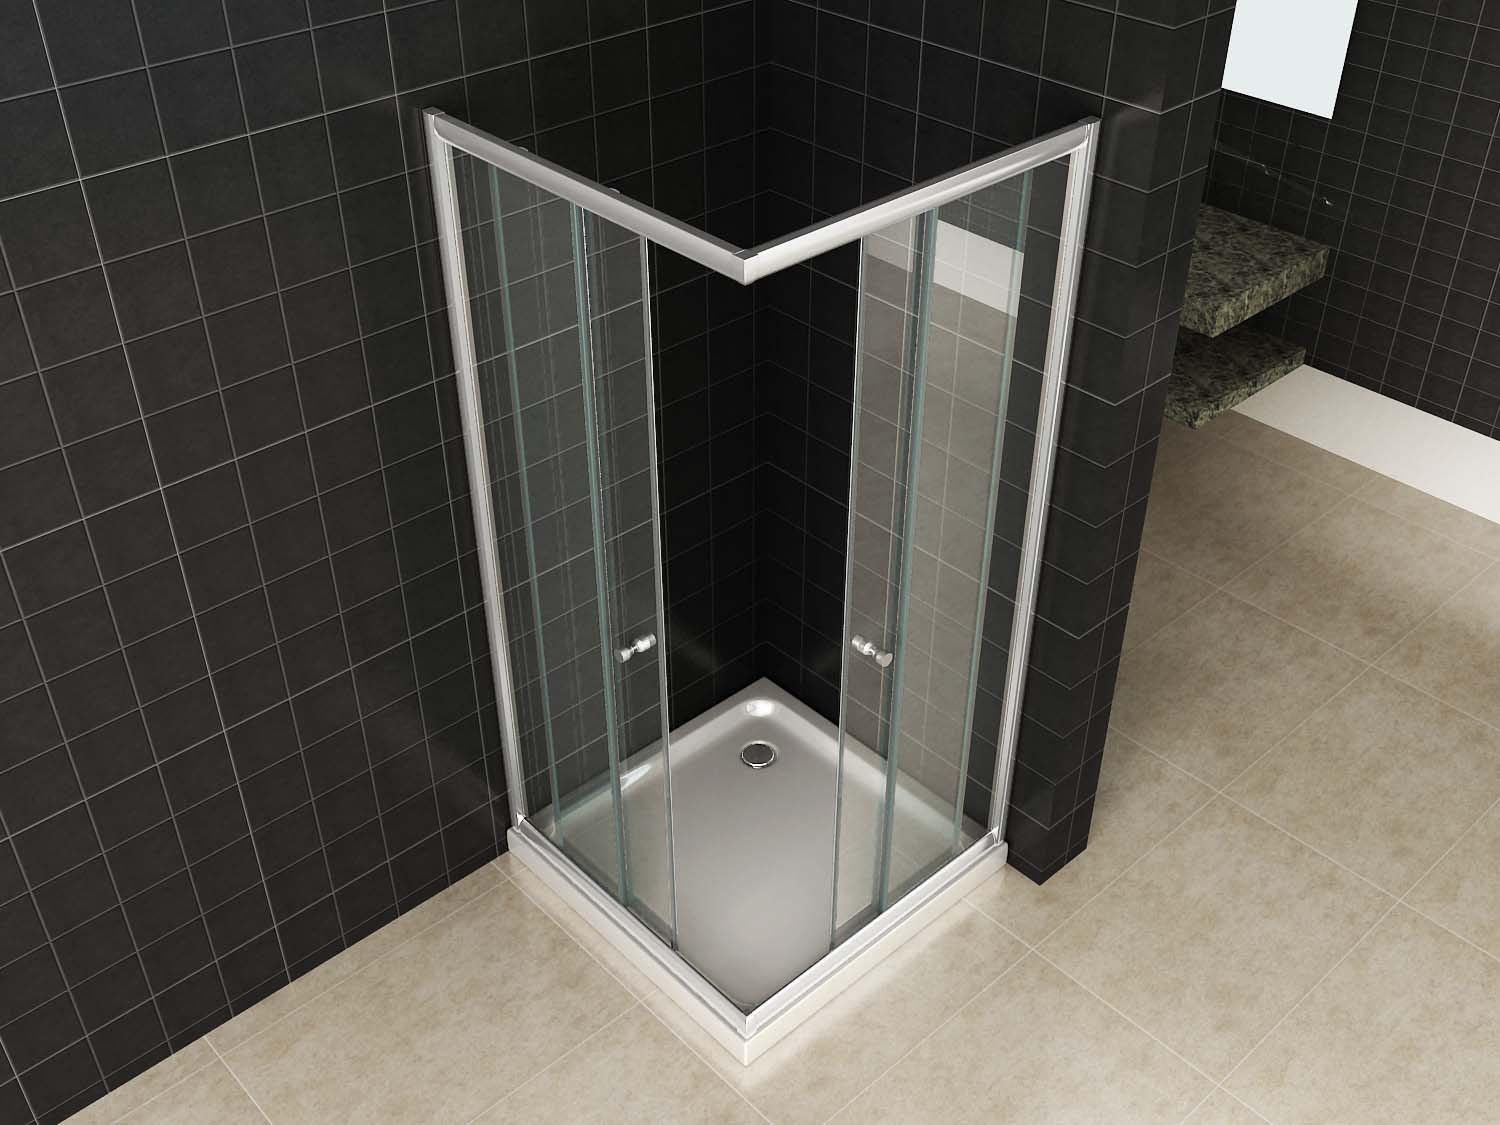 Douchecabine 80 90.Eco Hoekinstap Luxe Douchecabine Chroom 80 Of 90 Www Timsoutlet Nl